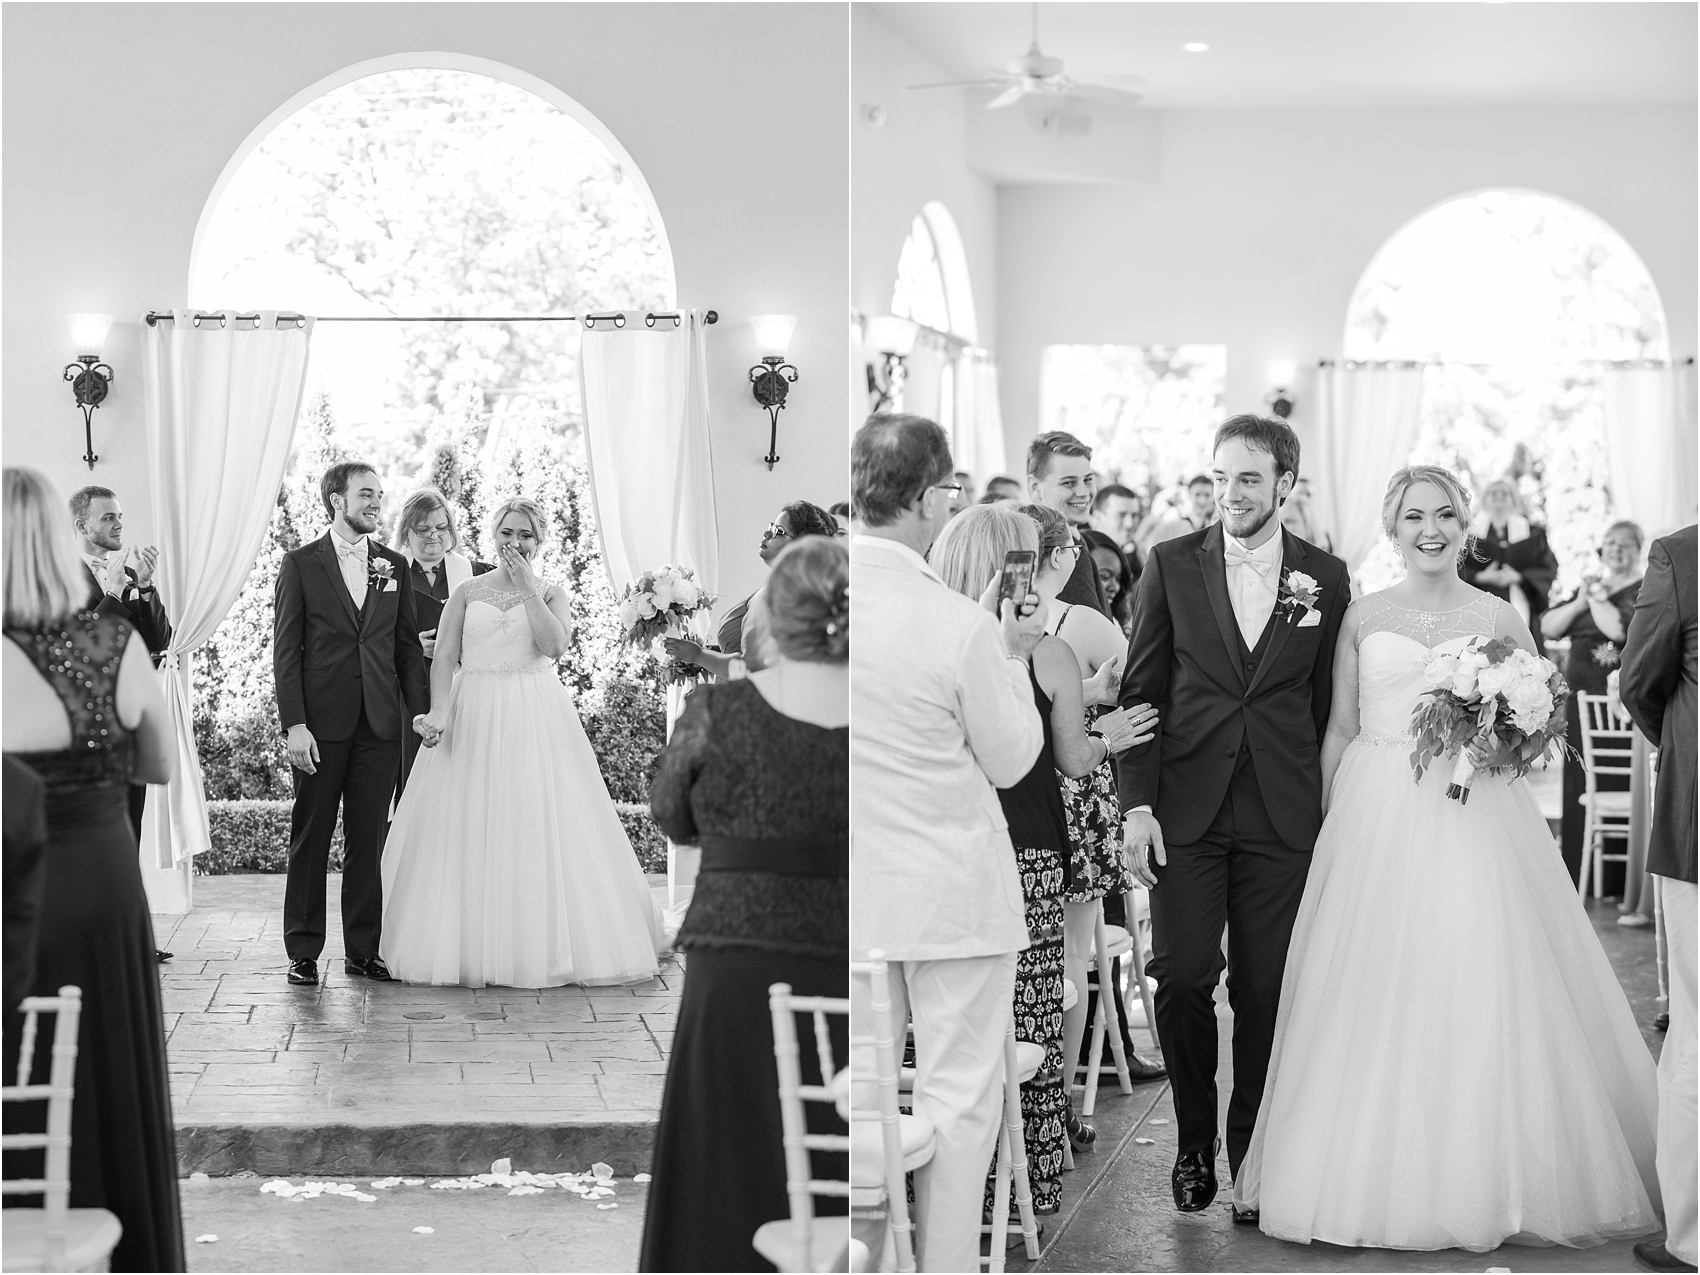 lord-of-the-rings-inspired-wedding-photos-at-crystal-gardens-in-howell-mi-by-courtney-carolyn-photography_0052.jpg